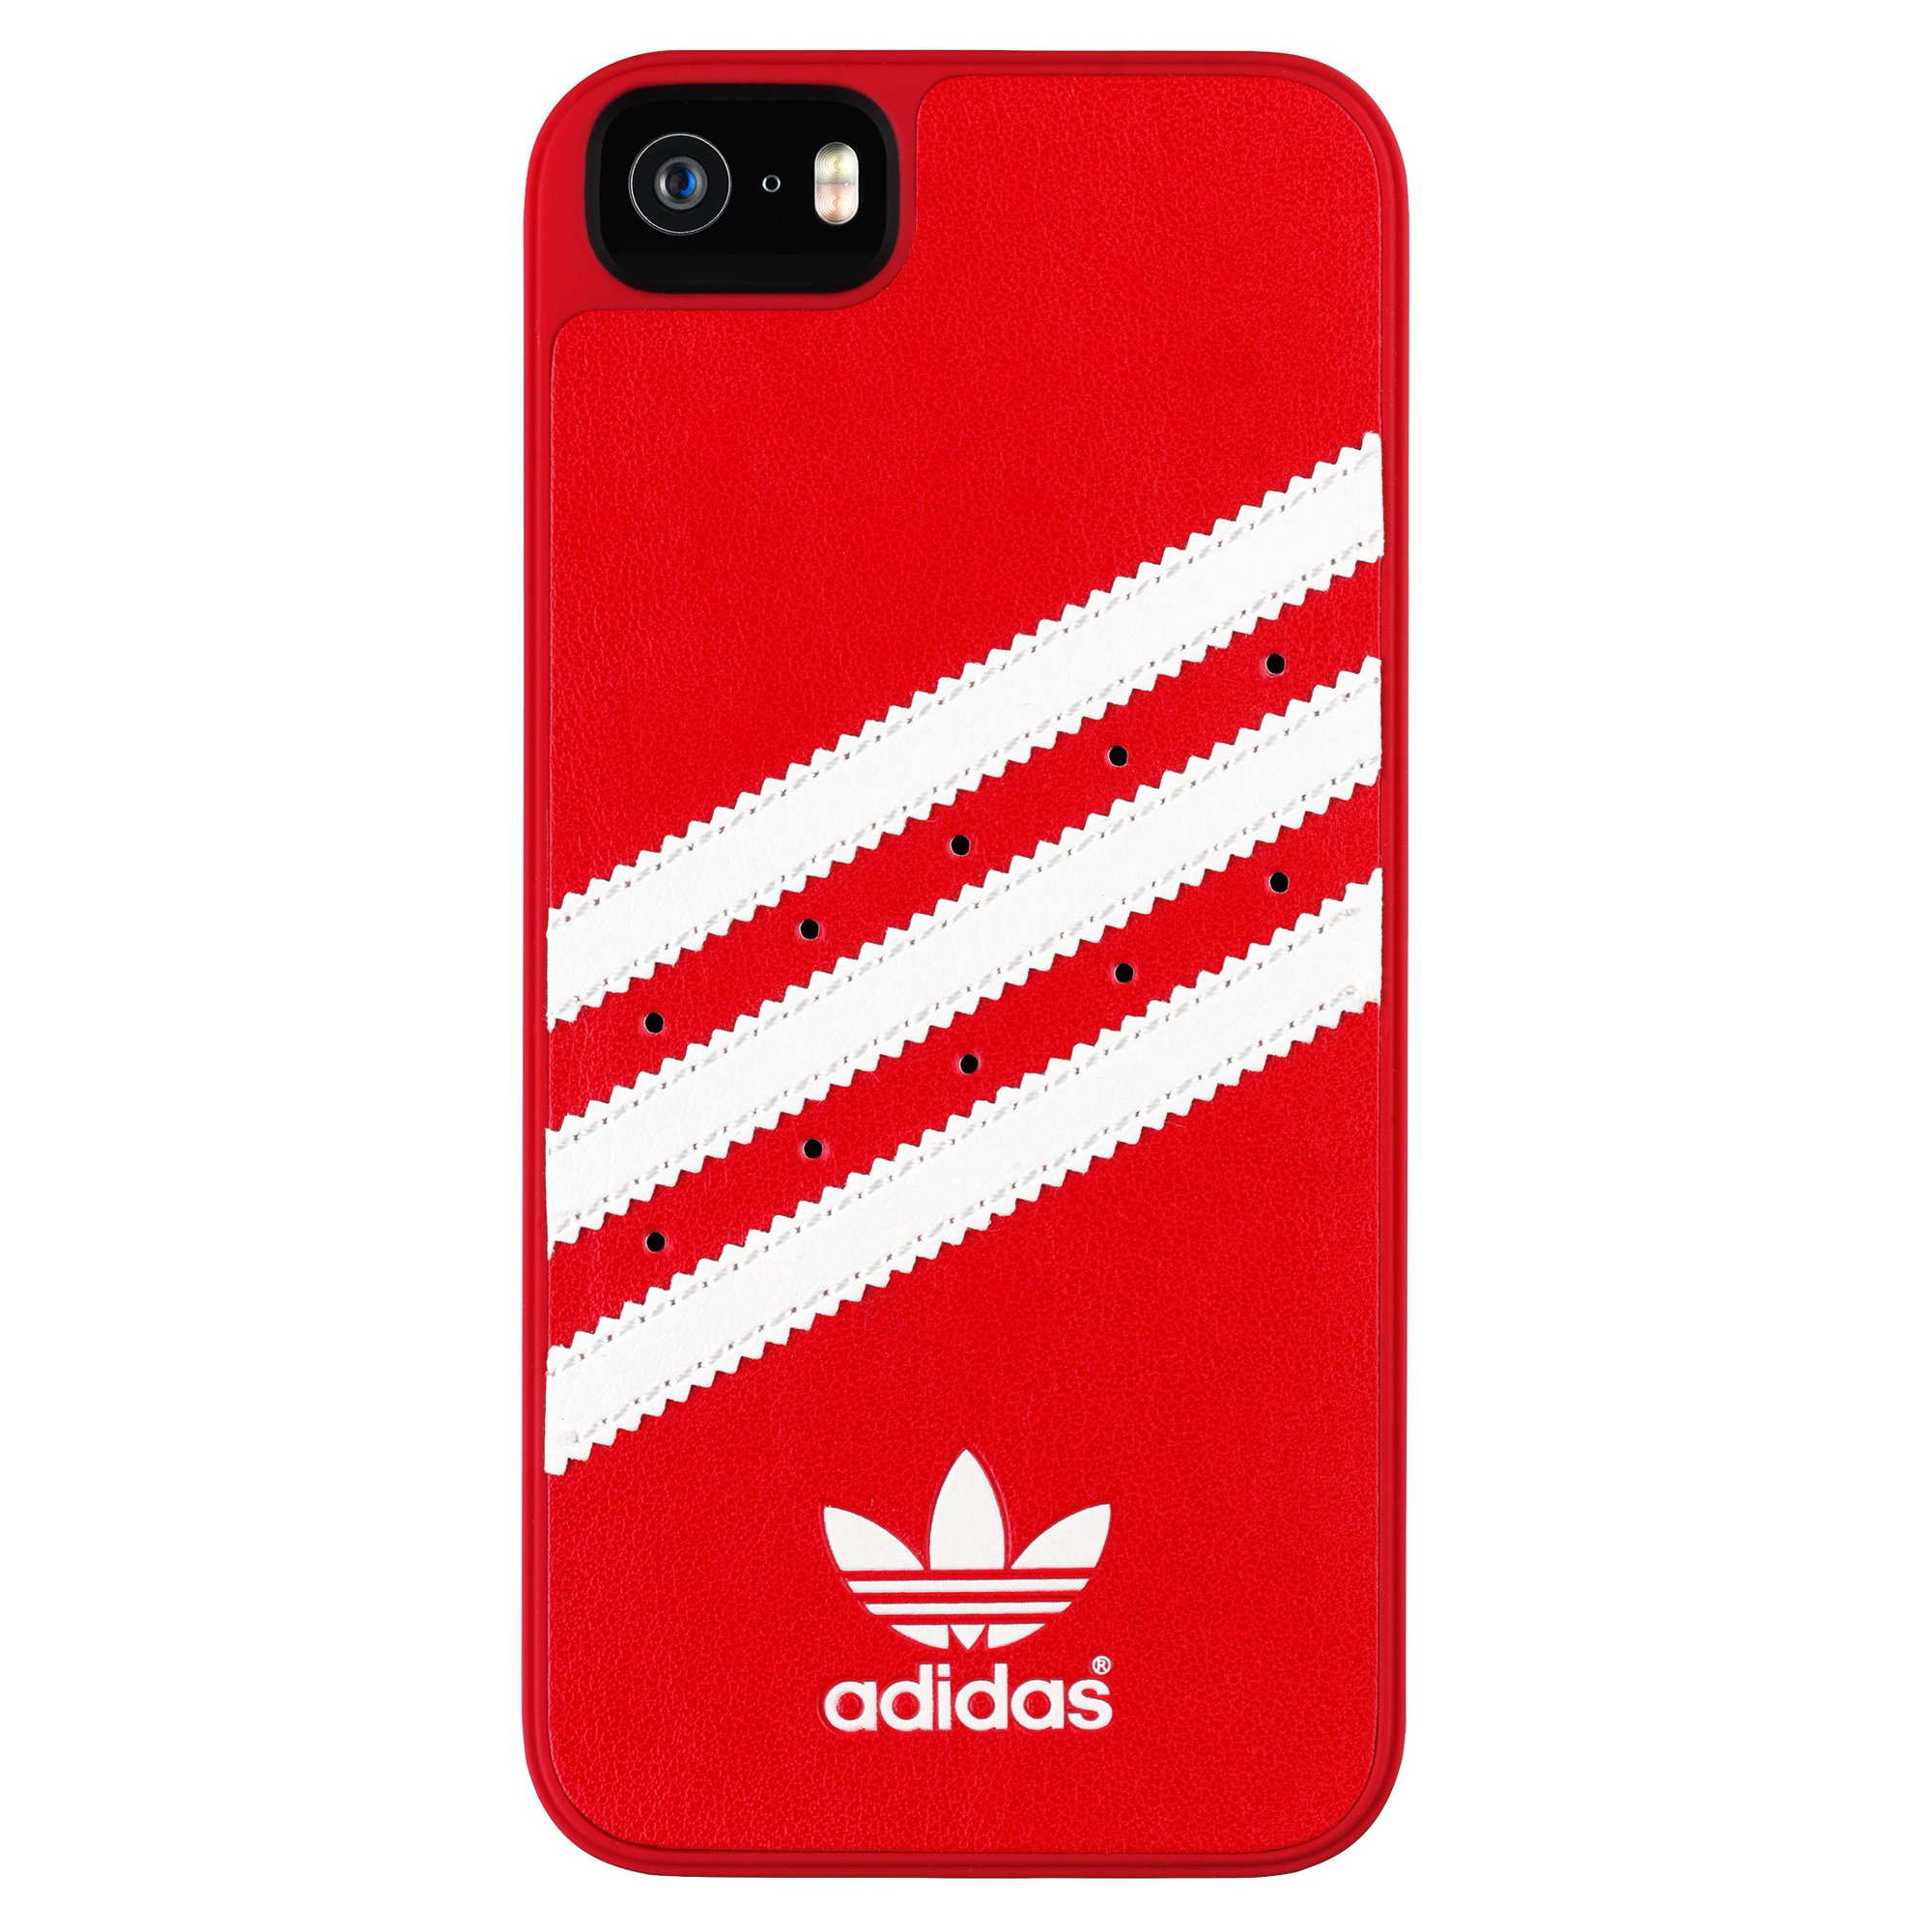 best service 55687 dc159 ADIDAS iPhone 5/5S/SE Red/White Basic Hard Case - 16532